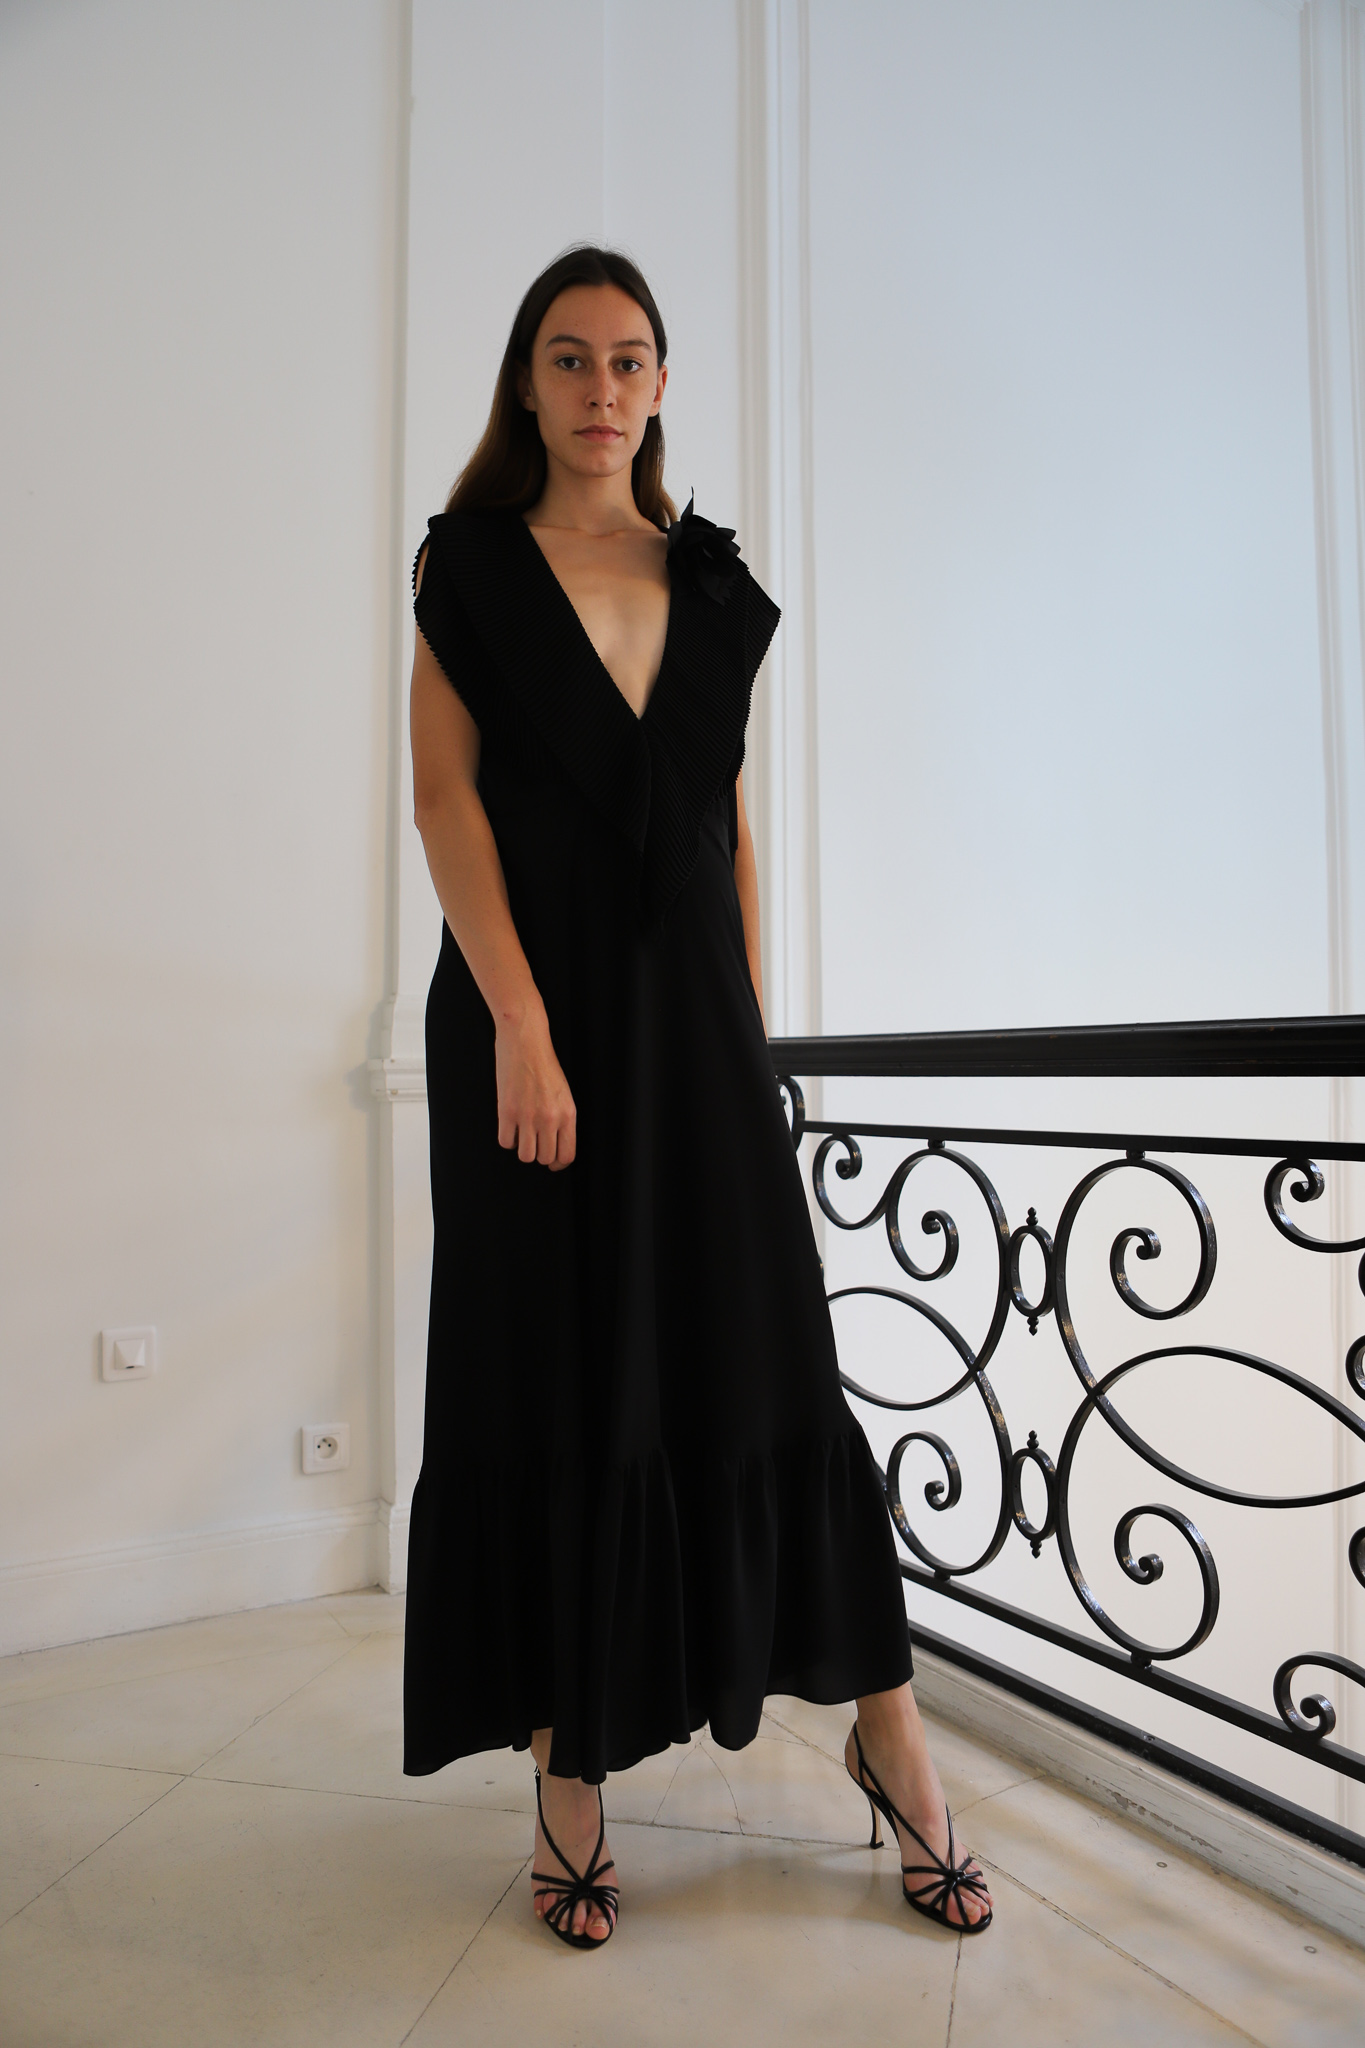 Victor Beckham V Neckline Dress in Black Spring 20 RTW